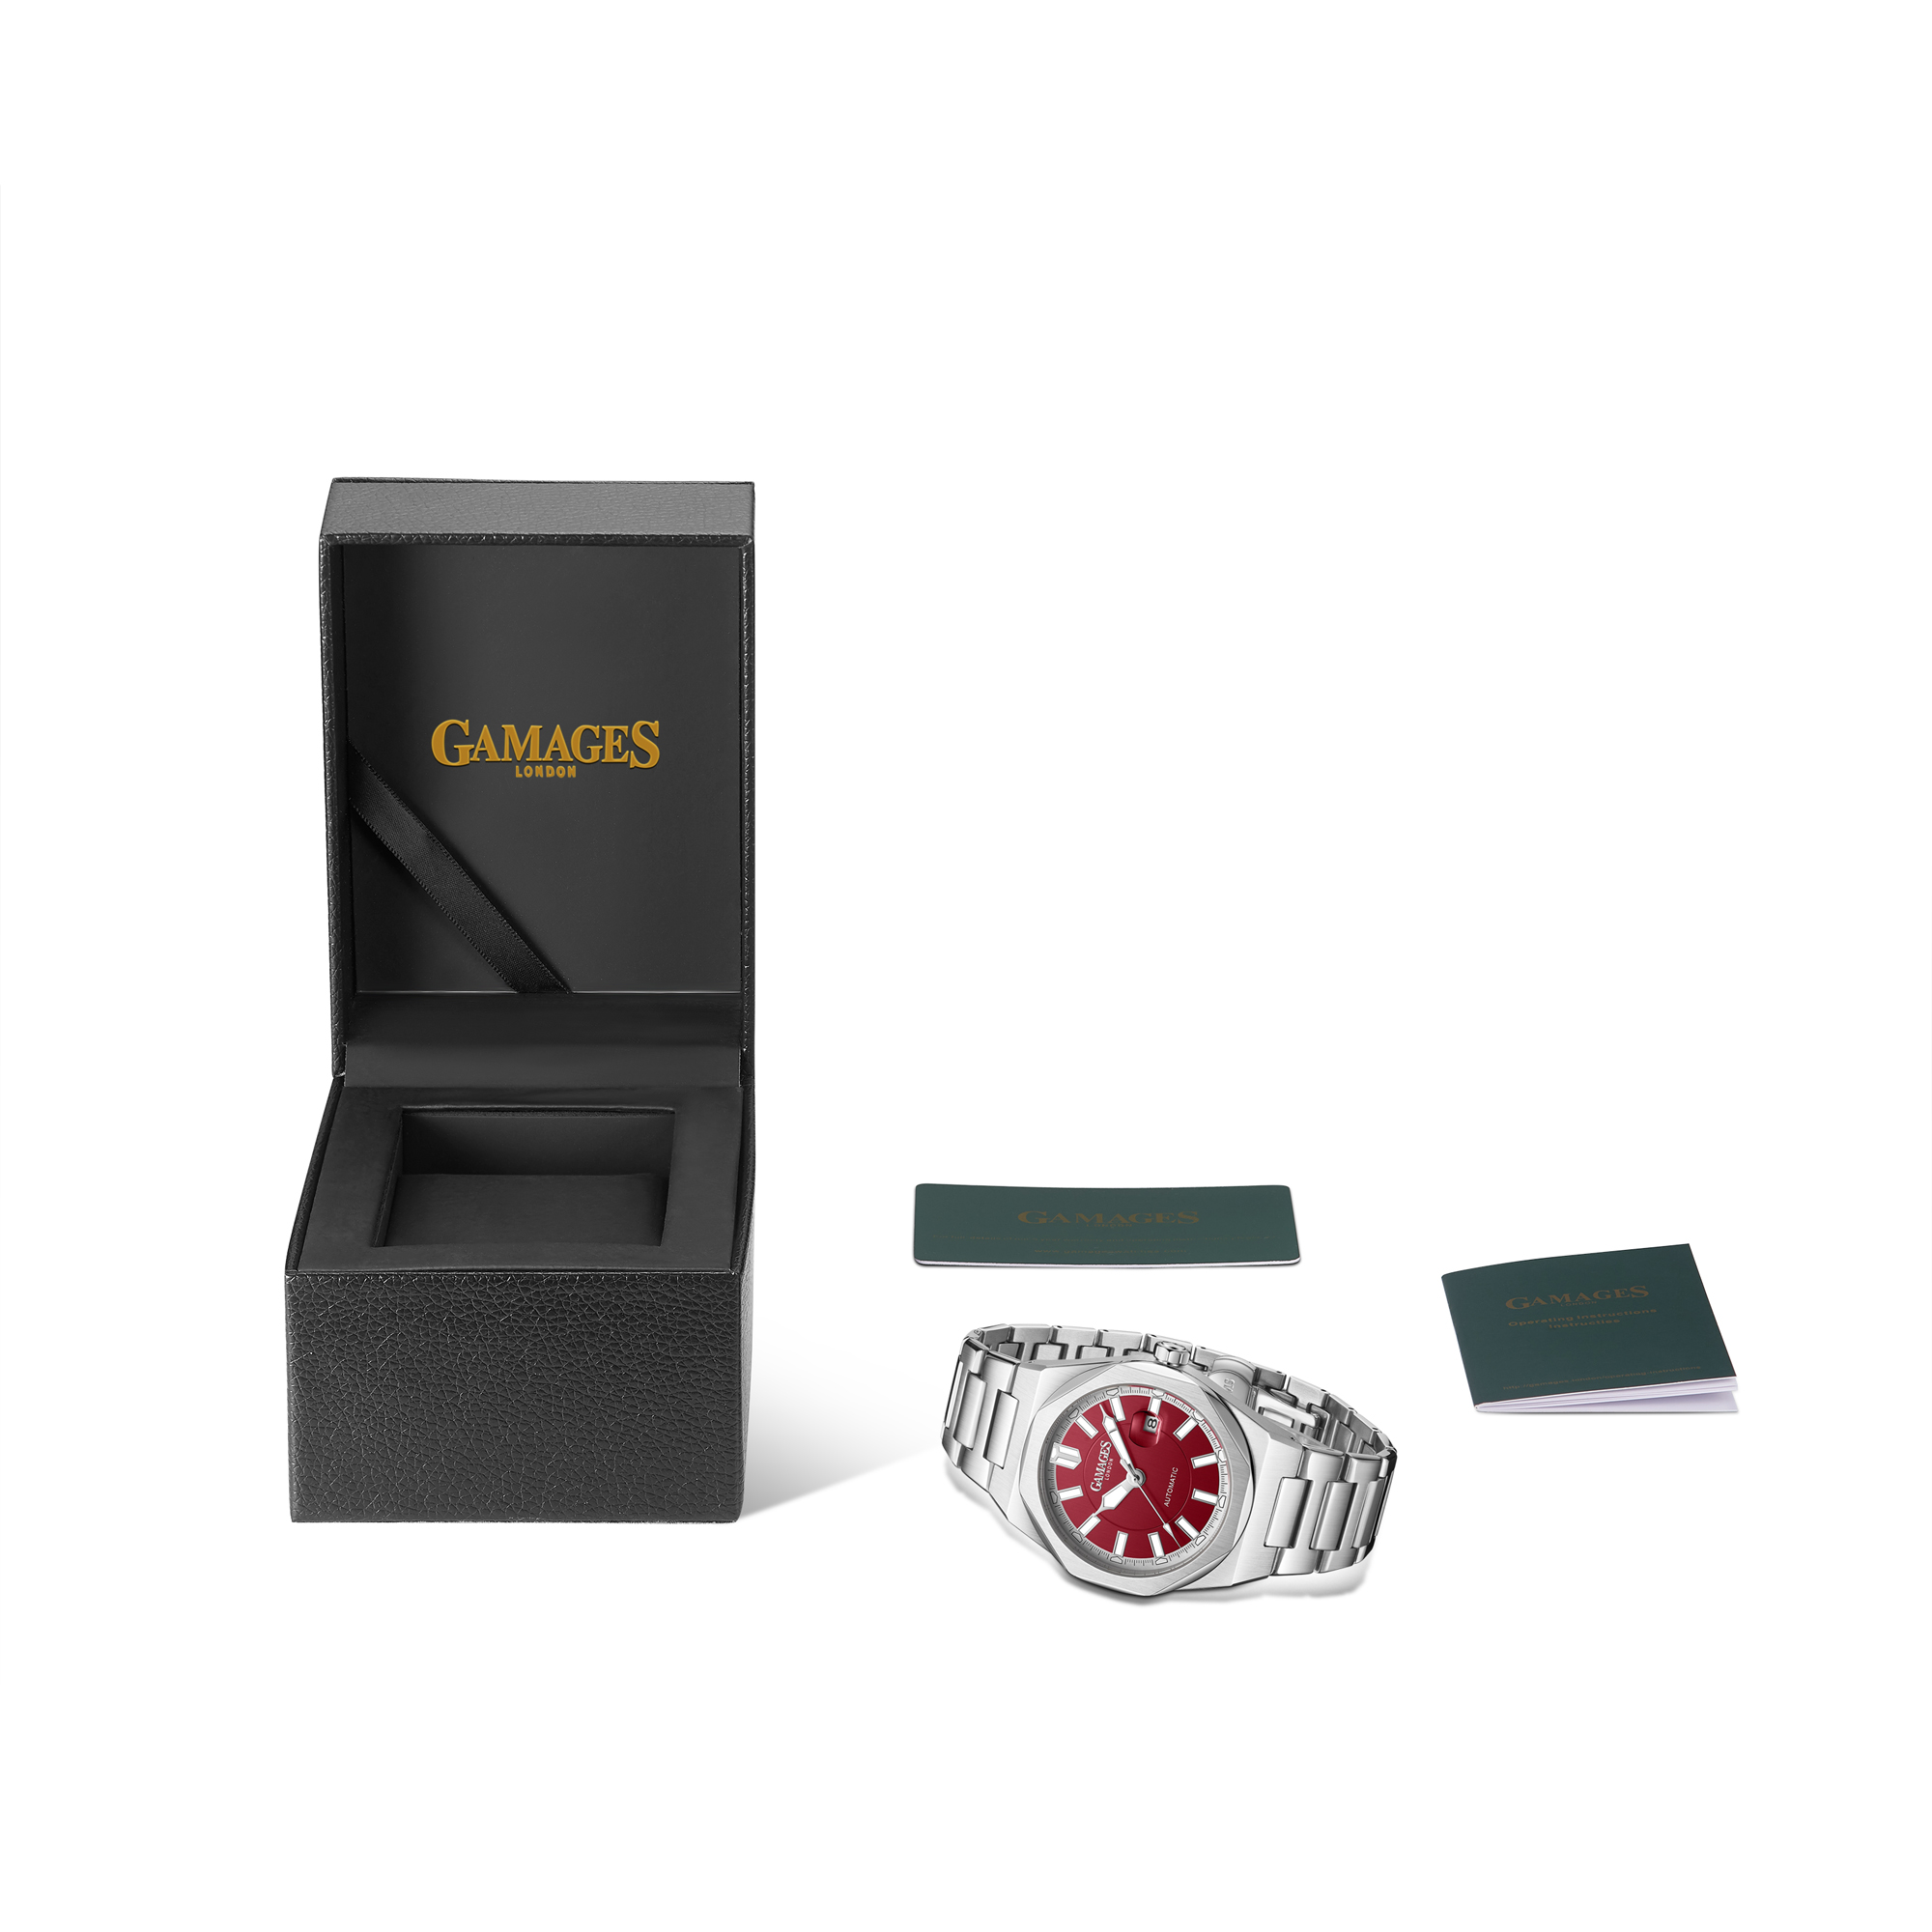 Ltd Edition Hand Assembled GAMAGES Quintessential Automatic Red – 5 Year Warranty & Free Delivery - Image 3 of 5